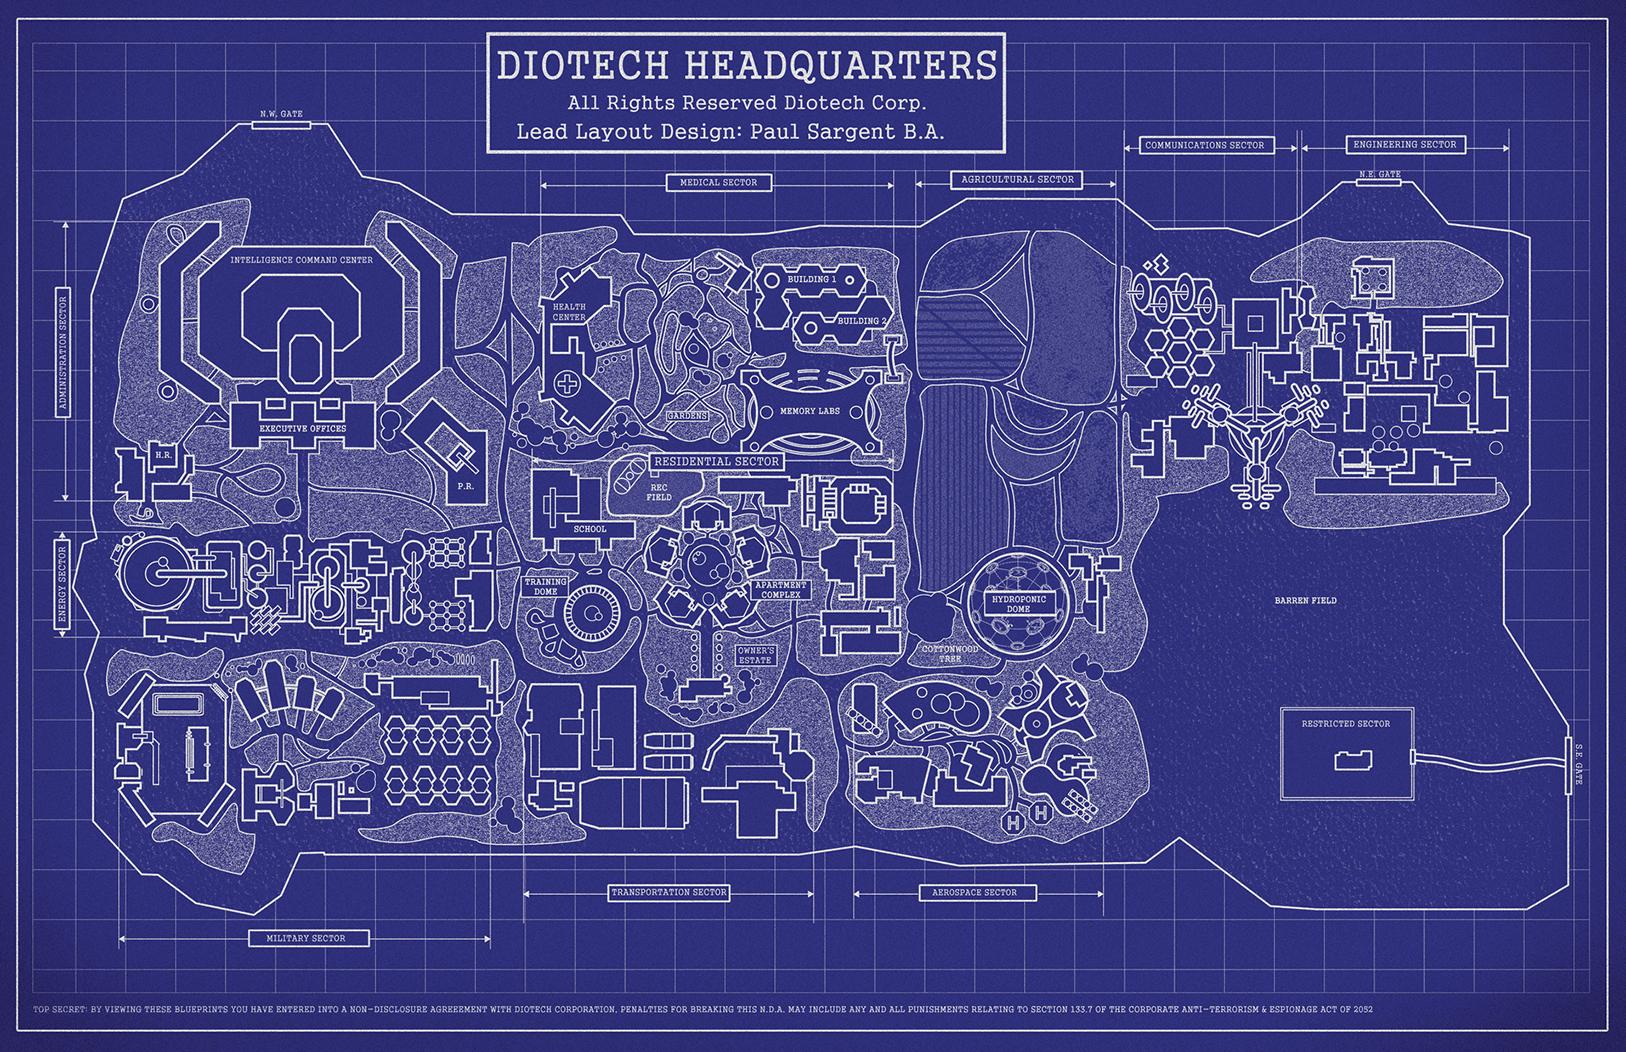 Jessica brody confiscated secret blueprints for the diotech compound diotechmap web malvernweather Gallery